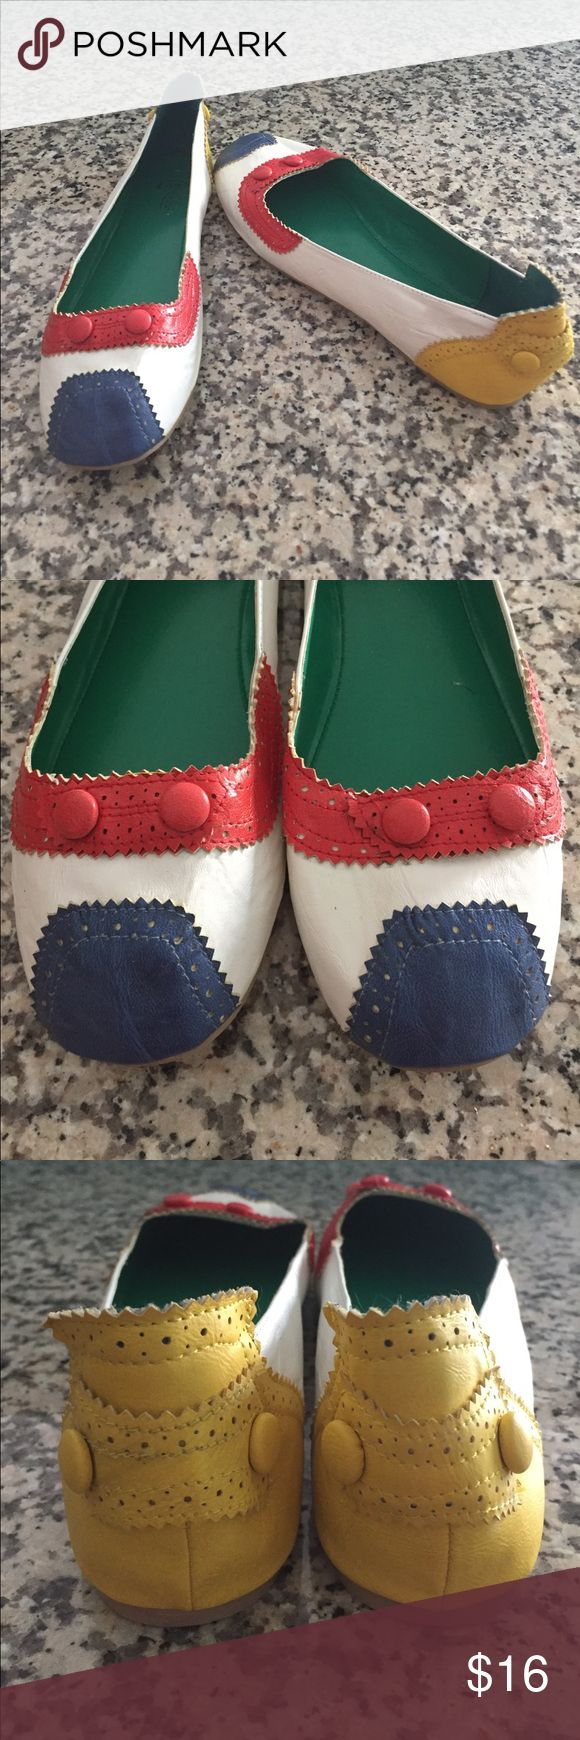 """""""Primarily Colors Flat"""" from ModCloth - size 11 Never been worn...in excellent condition! Primarily Colors Flat from ModCloth...no longer available! White body with red, blue and yellow accents. Size 11. ModCloth Shoes Flats & Loafers"""